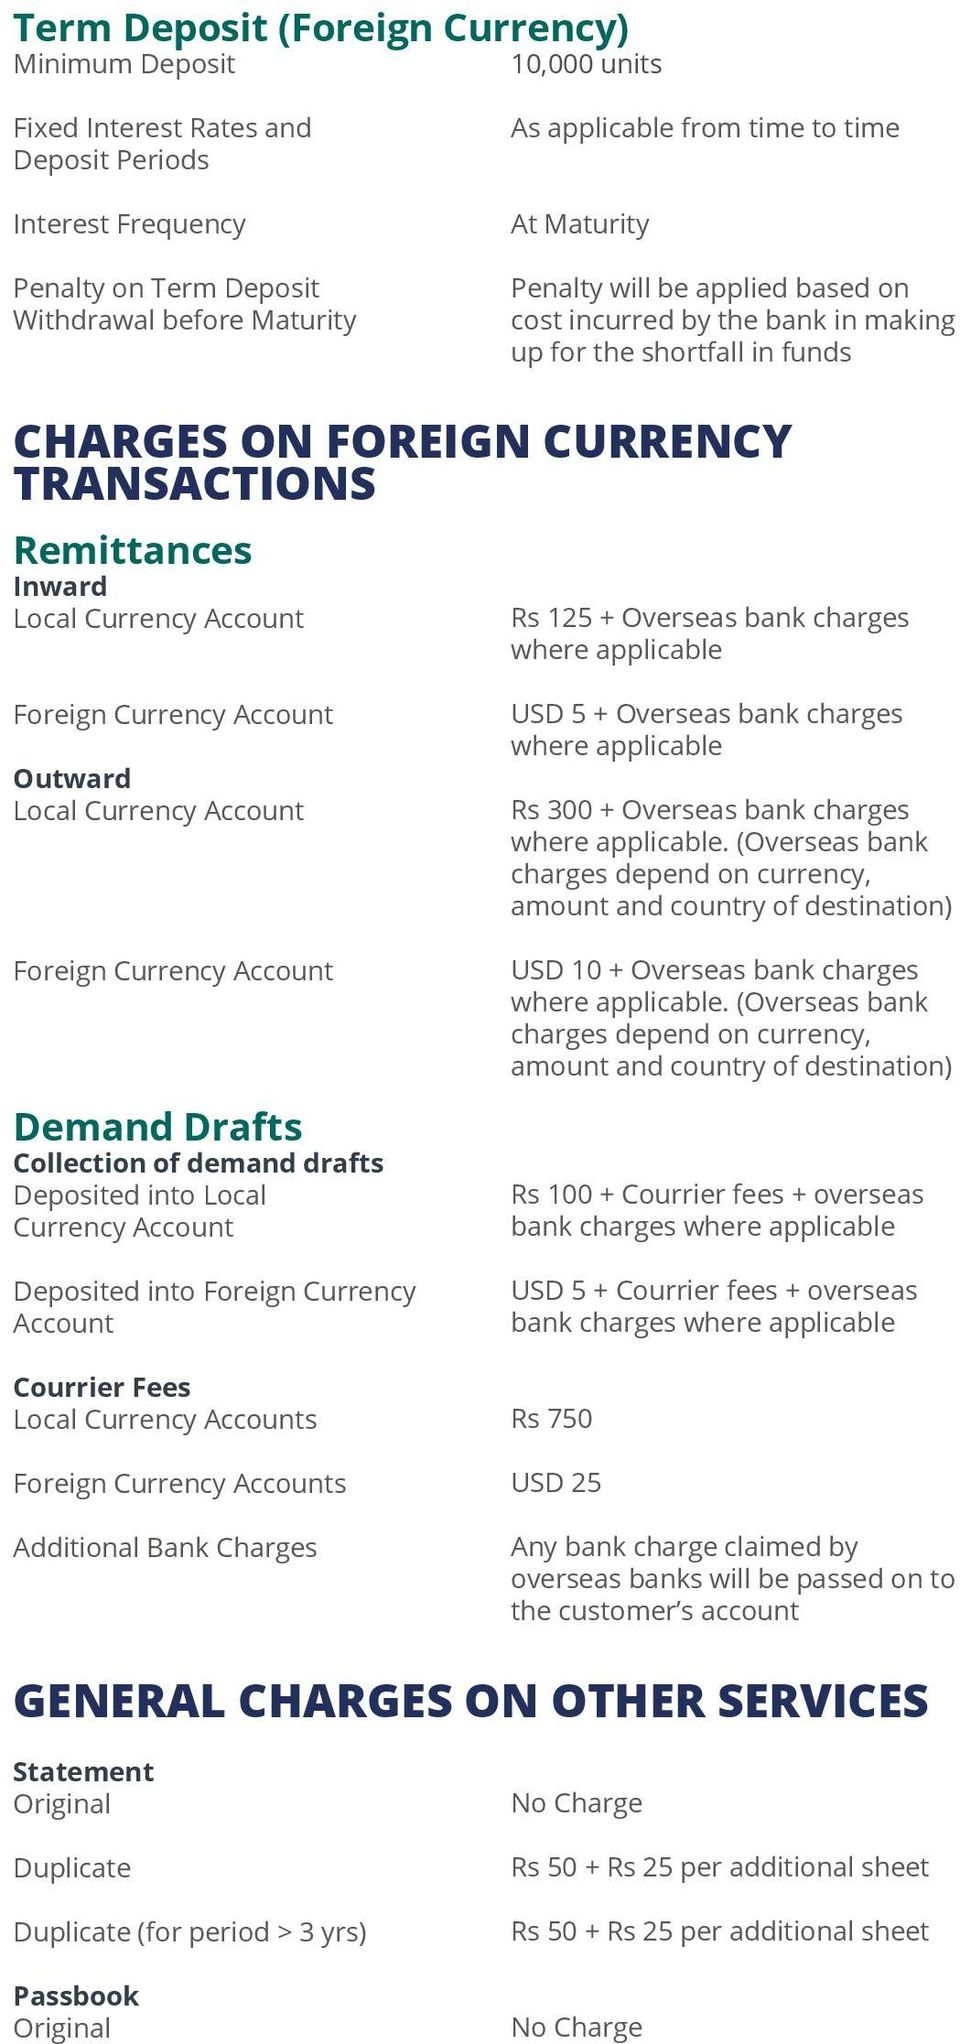 Rs 125 + Overseas bank charges where applicable Foreign Currency Account Outward Local Currency Account Foreign Currency Account Demand Drafts Collection of demand drafts Deposited into Local